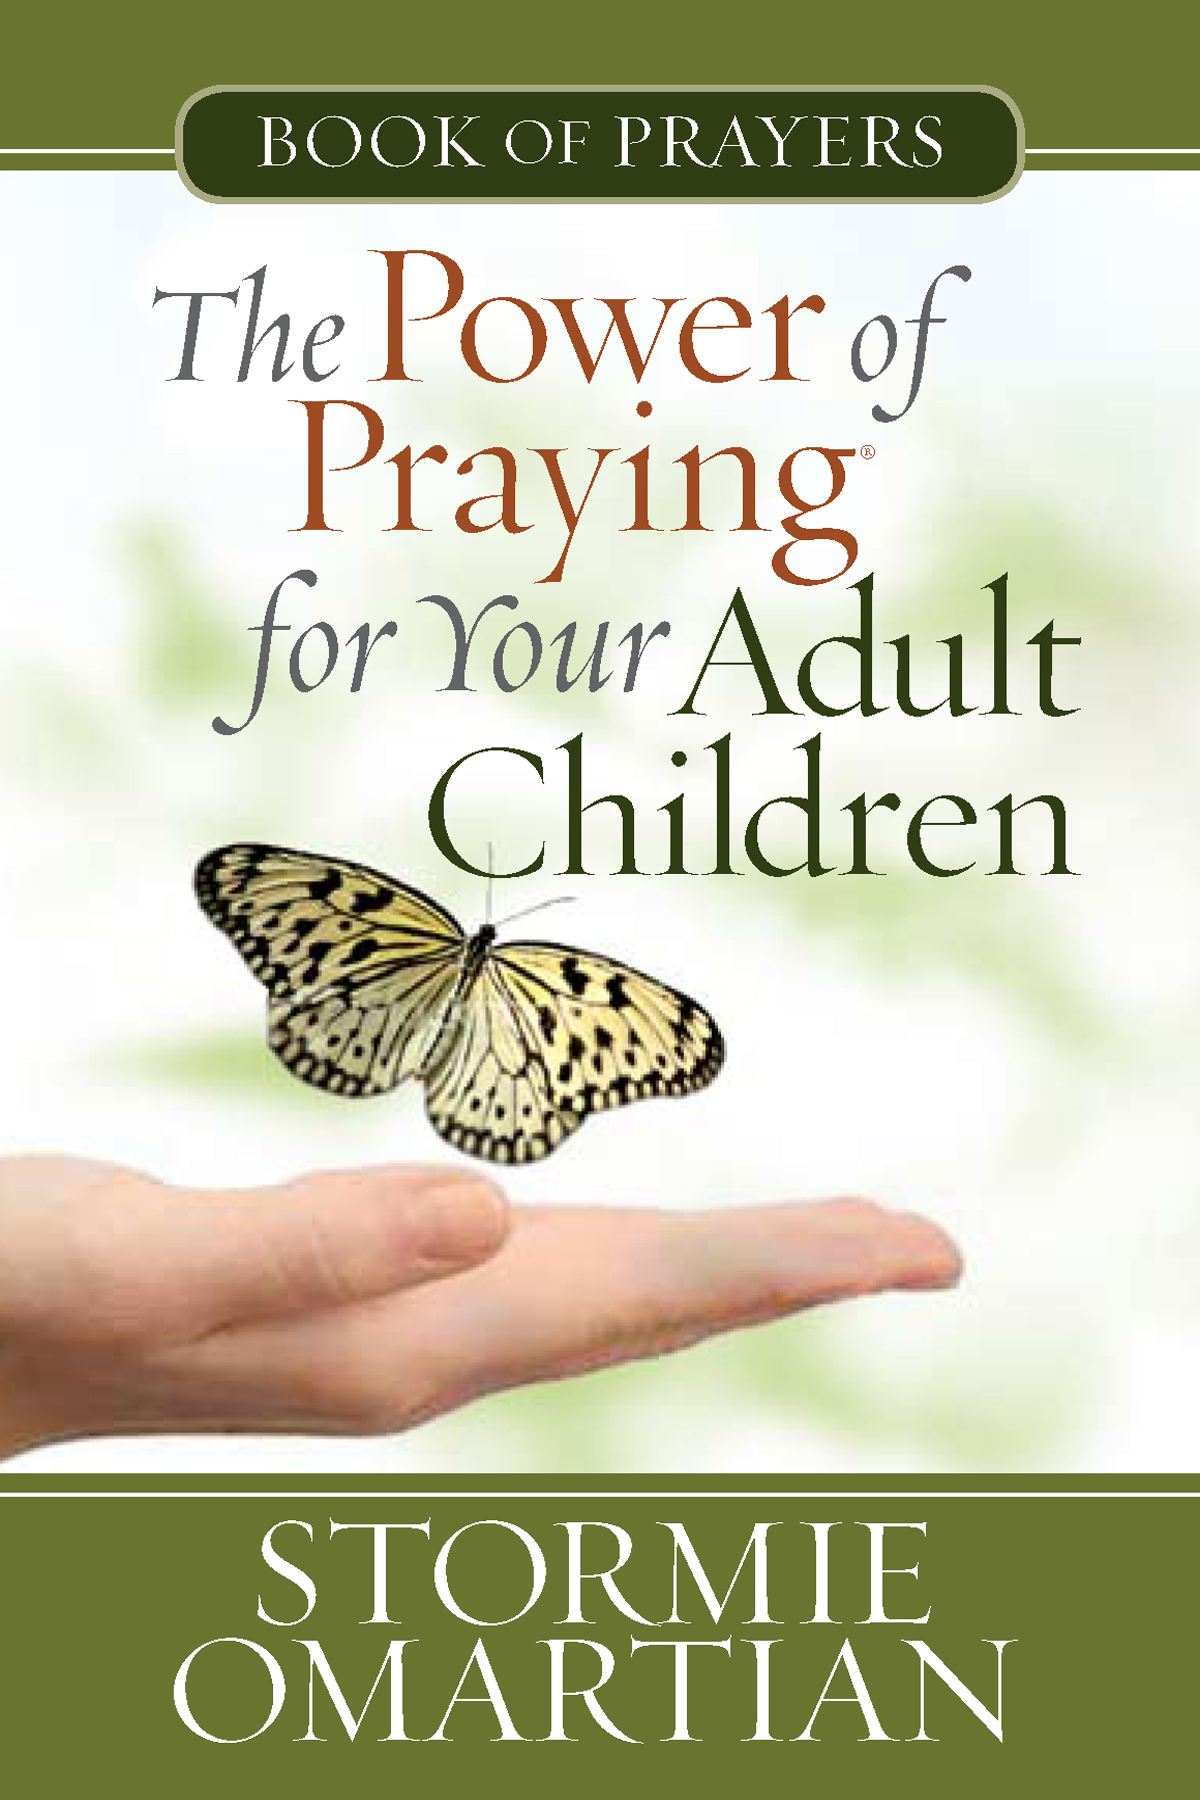 The Power of Praying® for Your Adult Children Book of Prayers By: Stormie Omartian